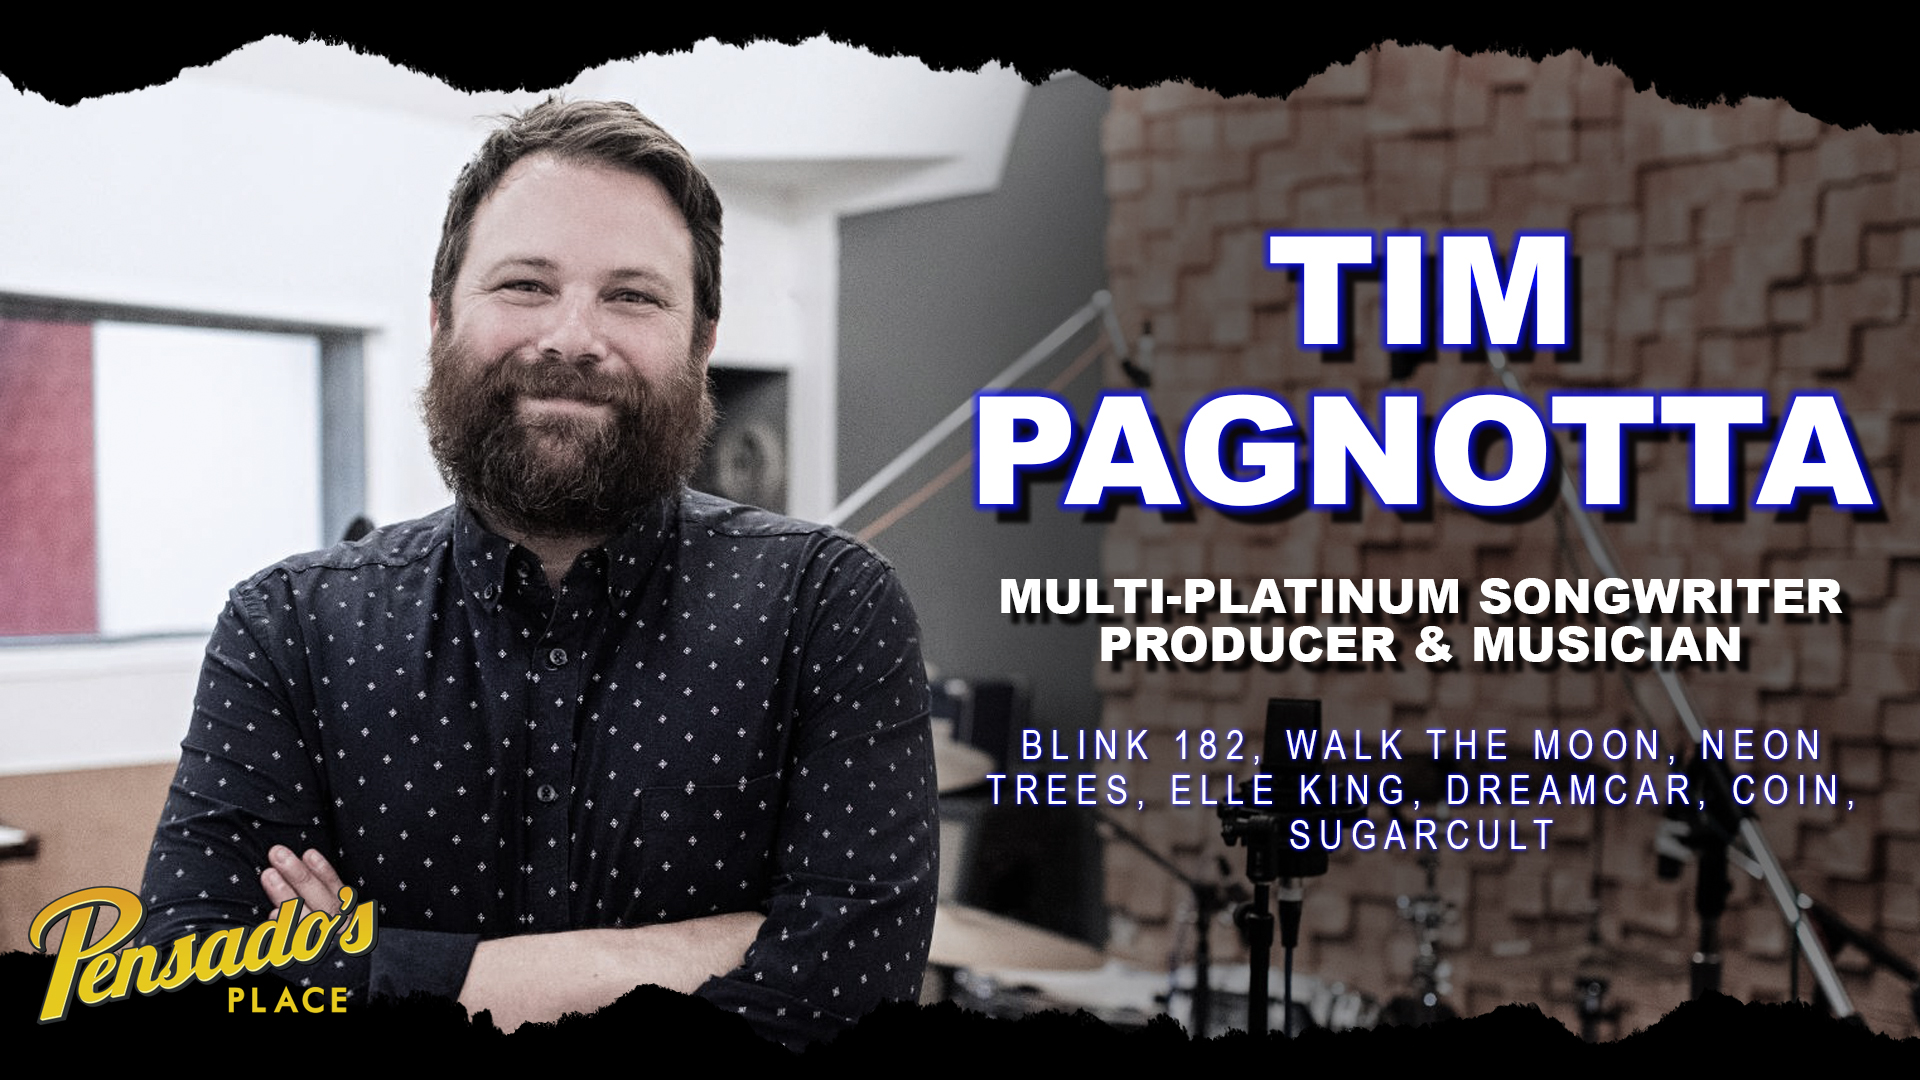 Multi-Platinum Songwriter / Producer / Musician, Tim Pagnotta